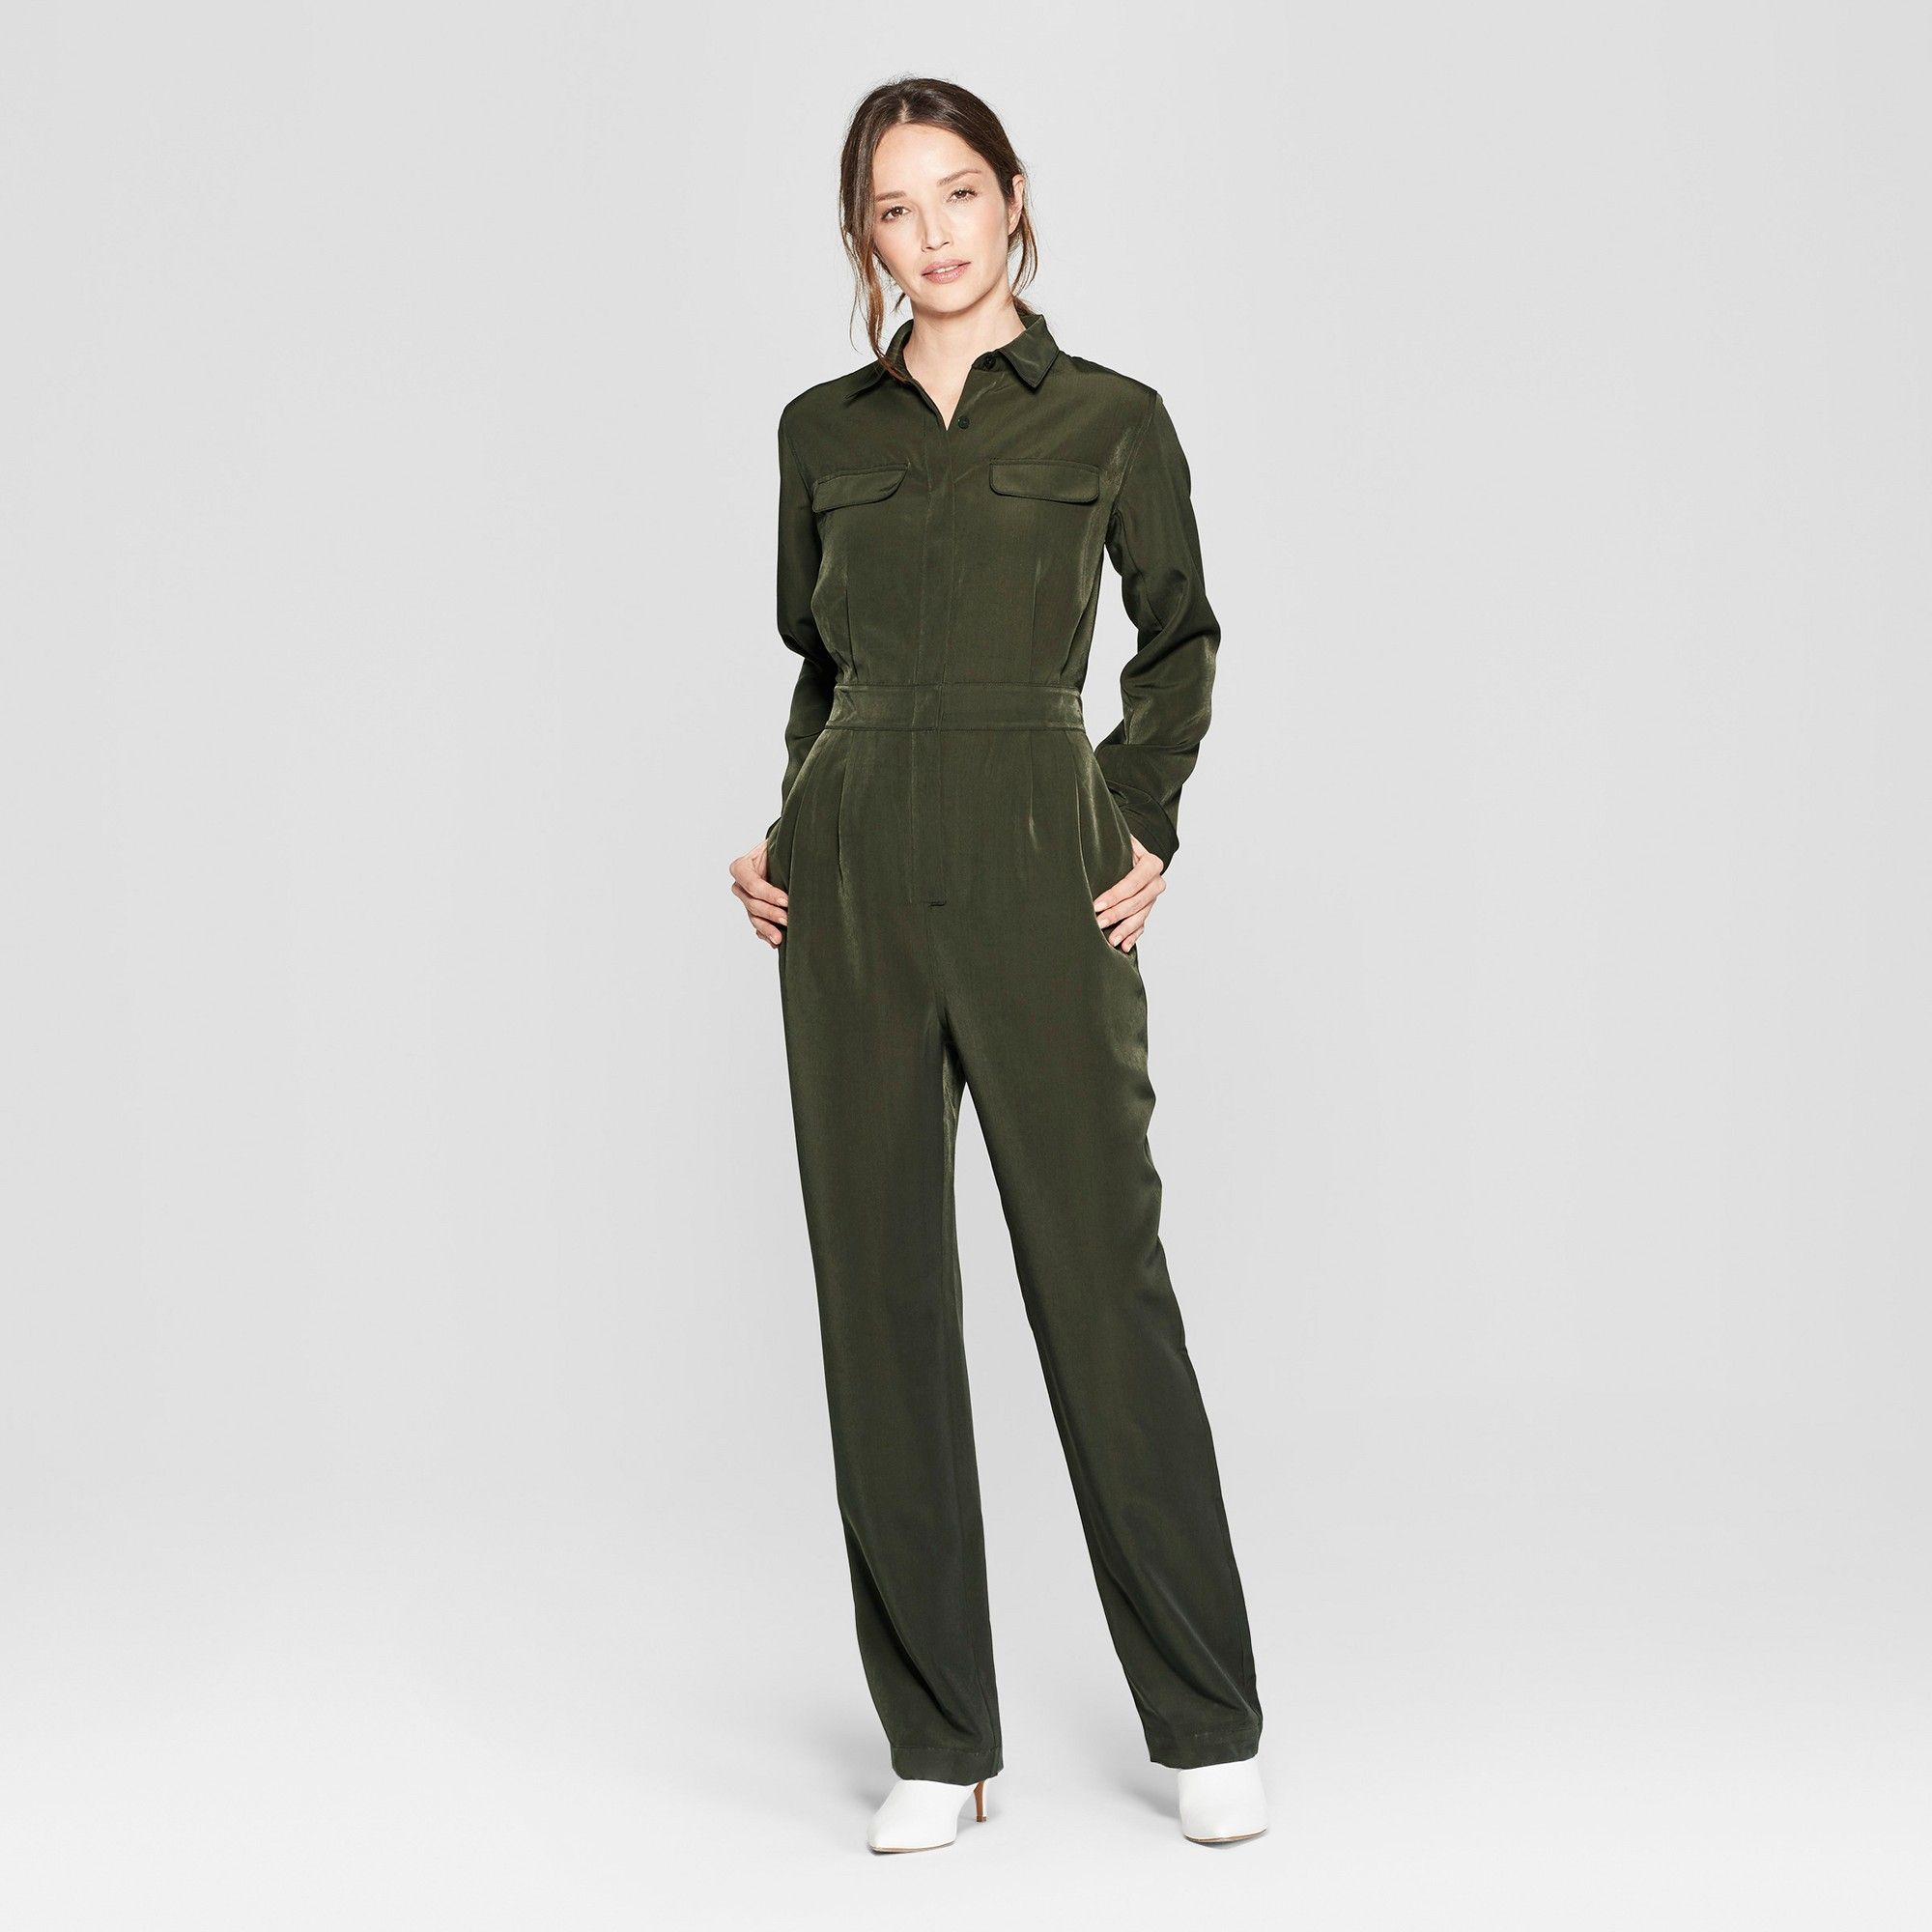 619946961 Women's Long Sleeve Collared Utility Jumpsuit - Prologue™ Olive XS ...